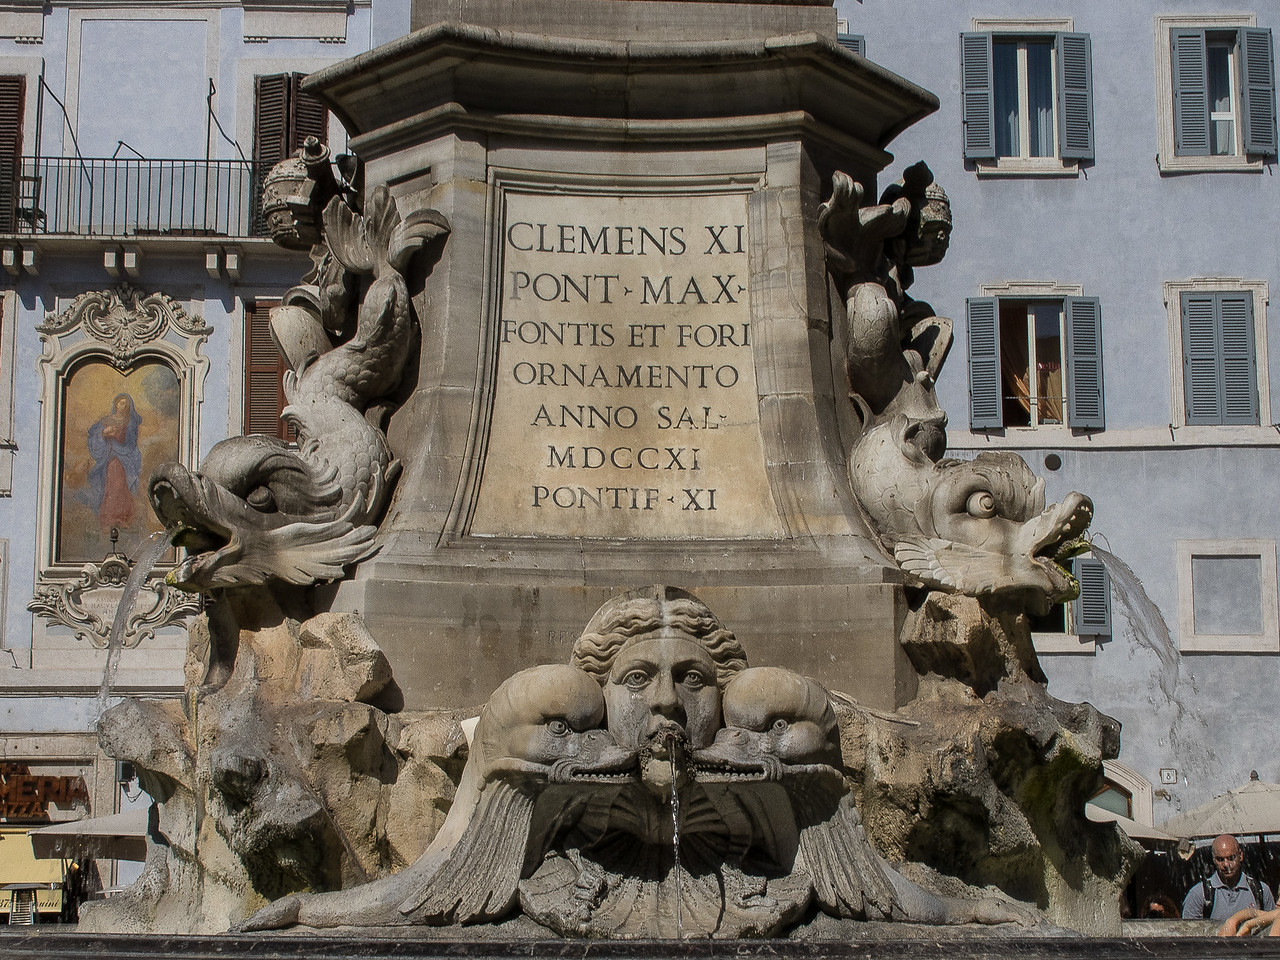 Fountain donated by Pope Clemens the 11th. Supporting an Egyptian obelisk 1721